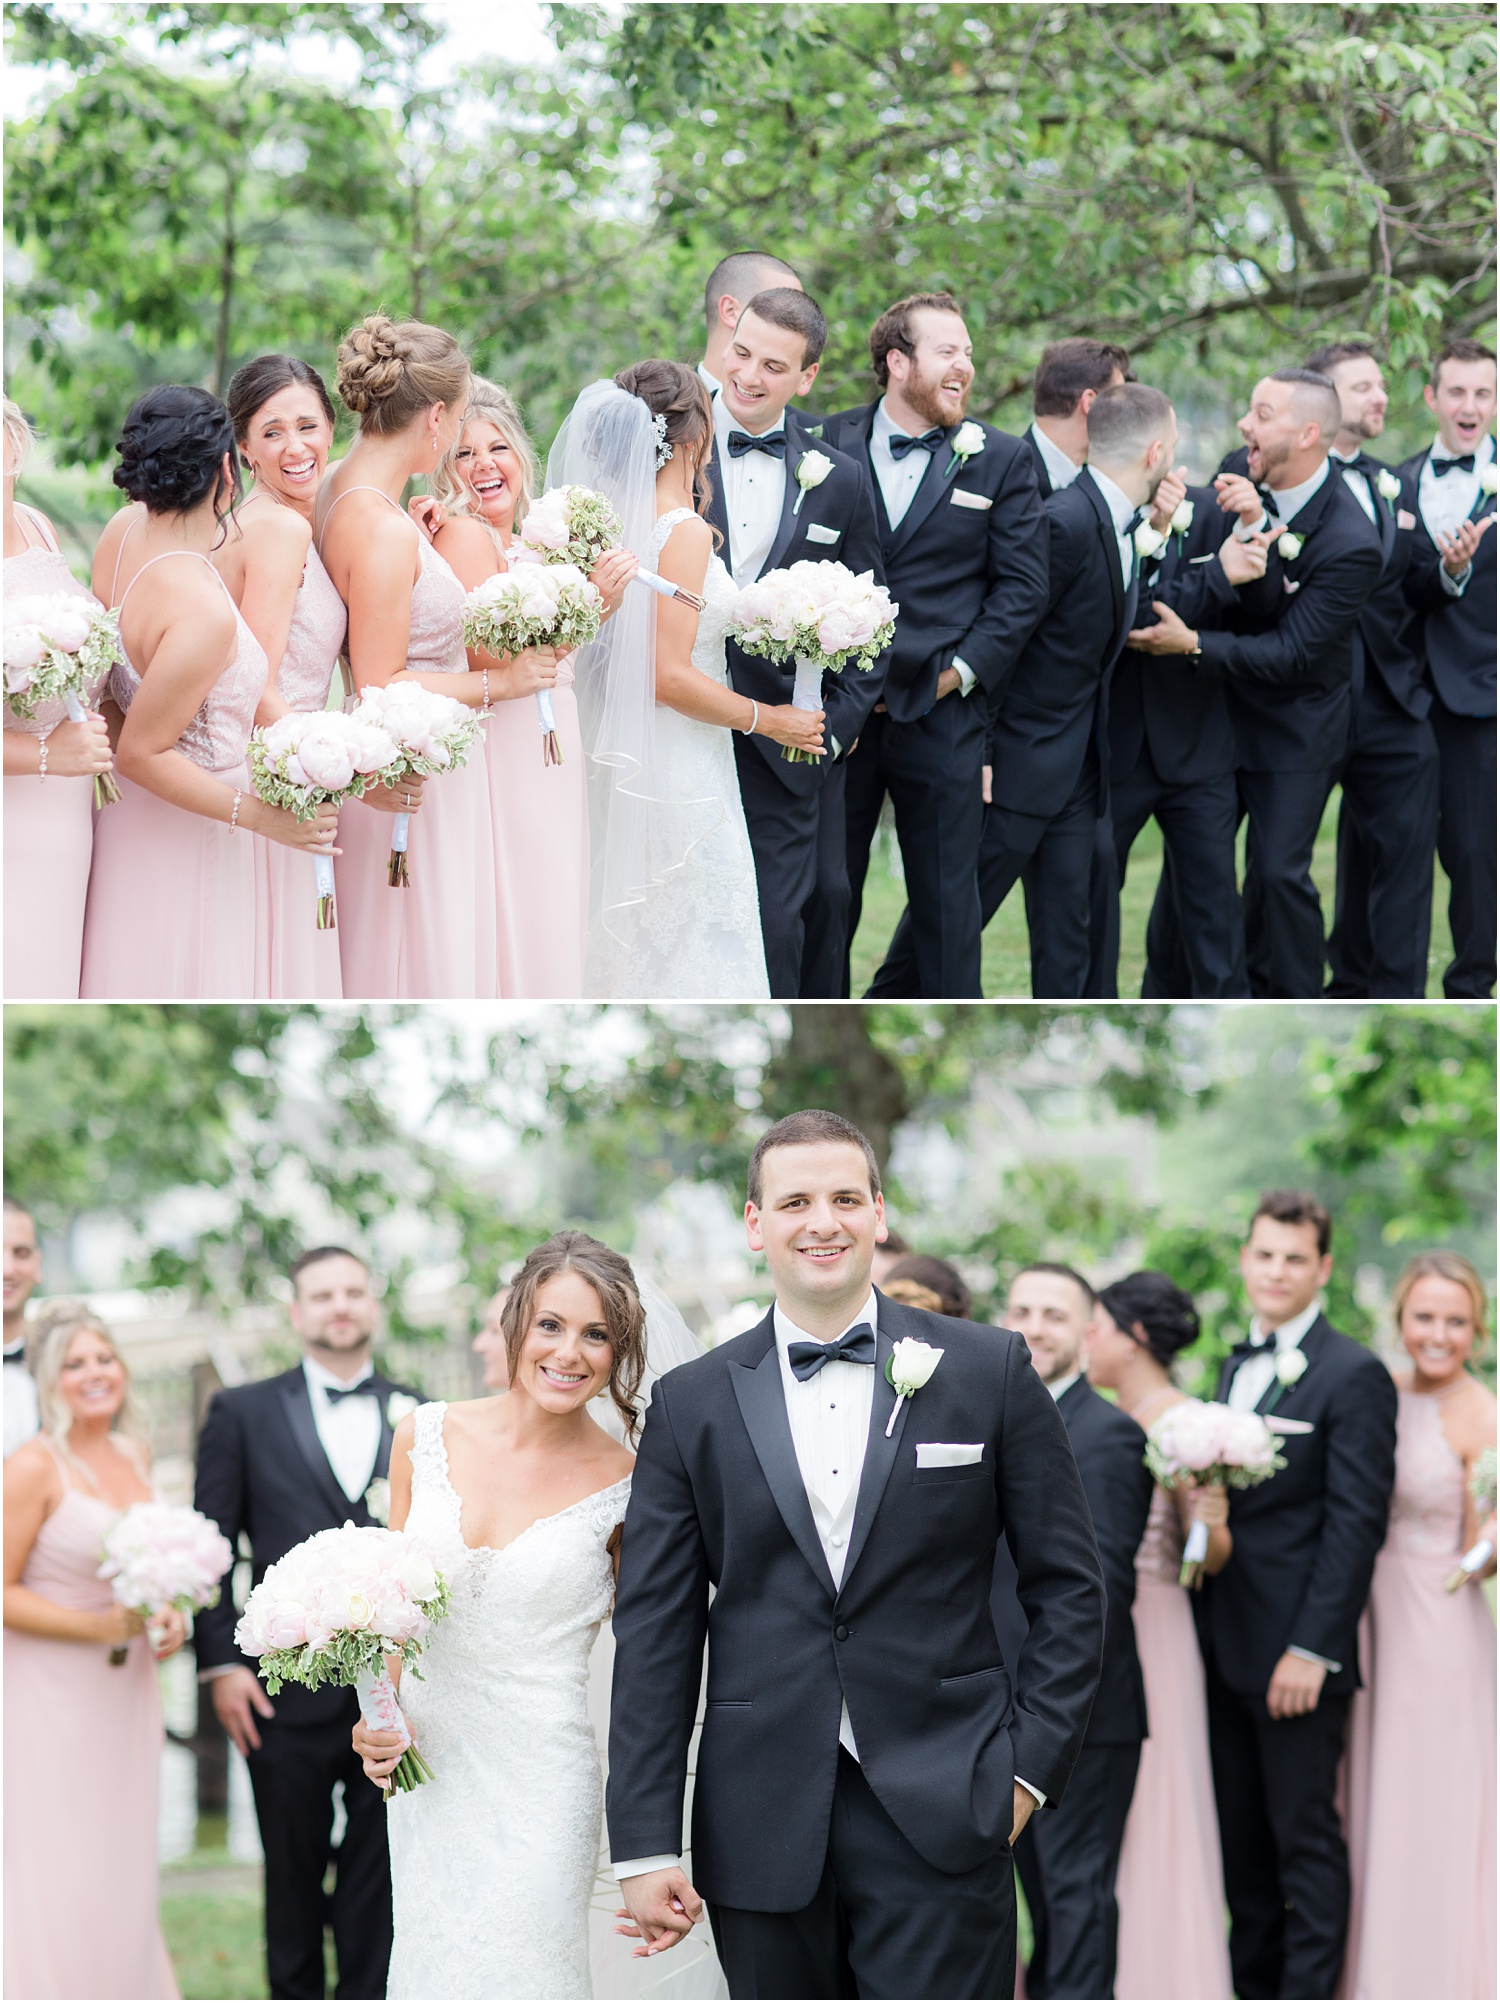 Fun photo with bridal party at Divine Park in Spring Lake